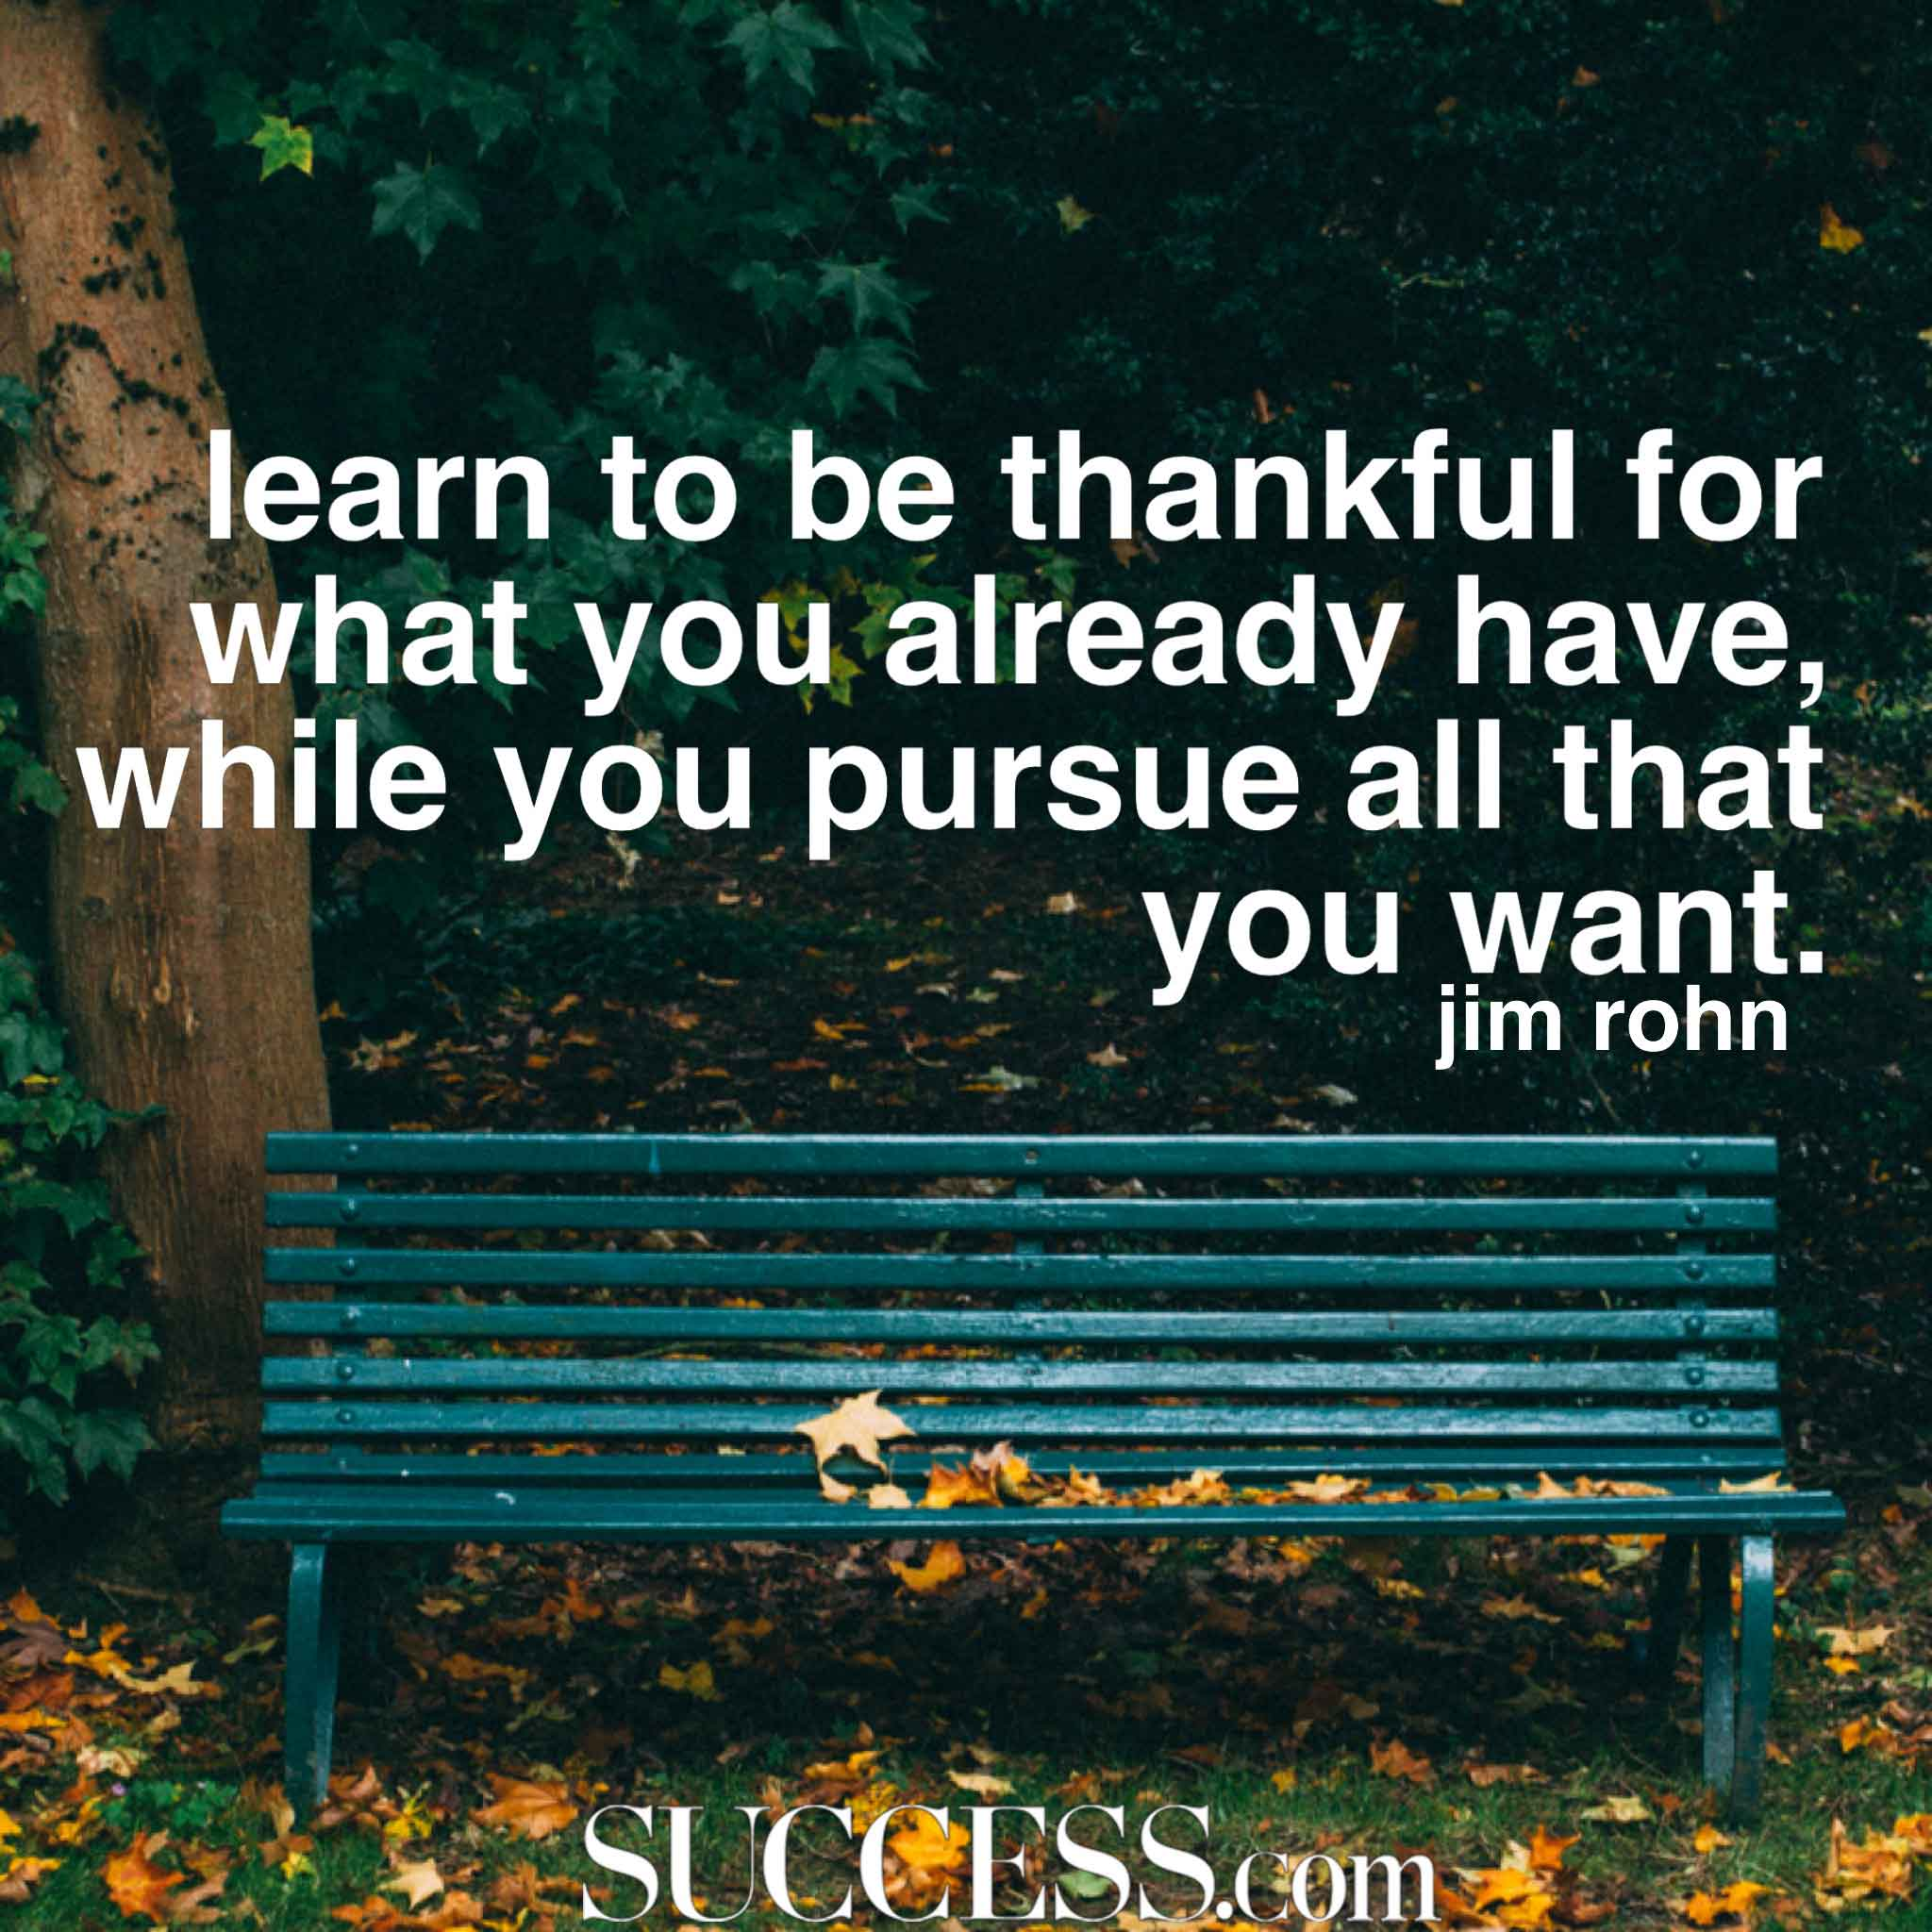 Quotes On Appreciation And Thanks: Jonathan Hilton Mind Connections